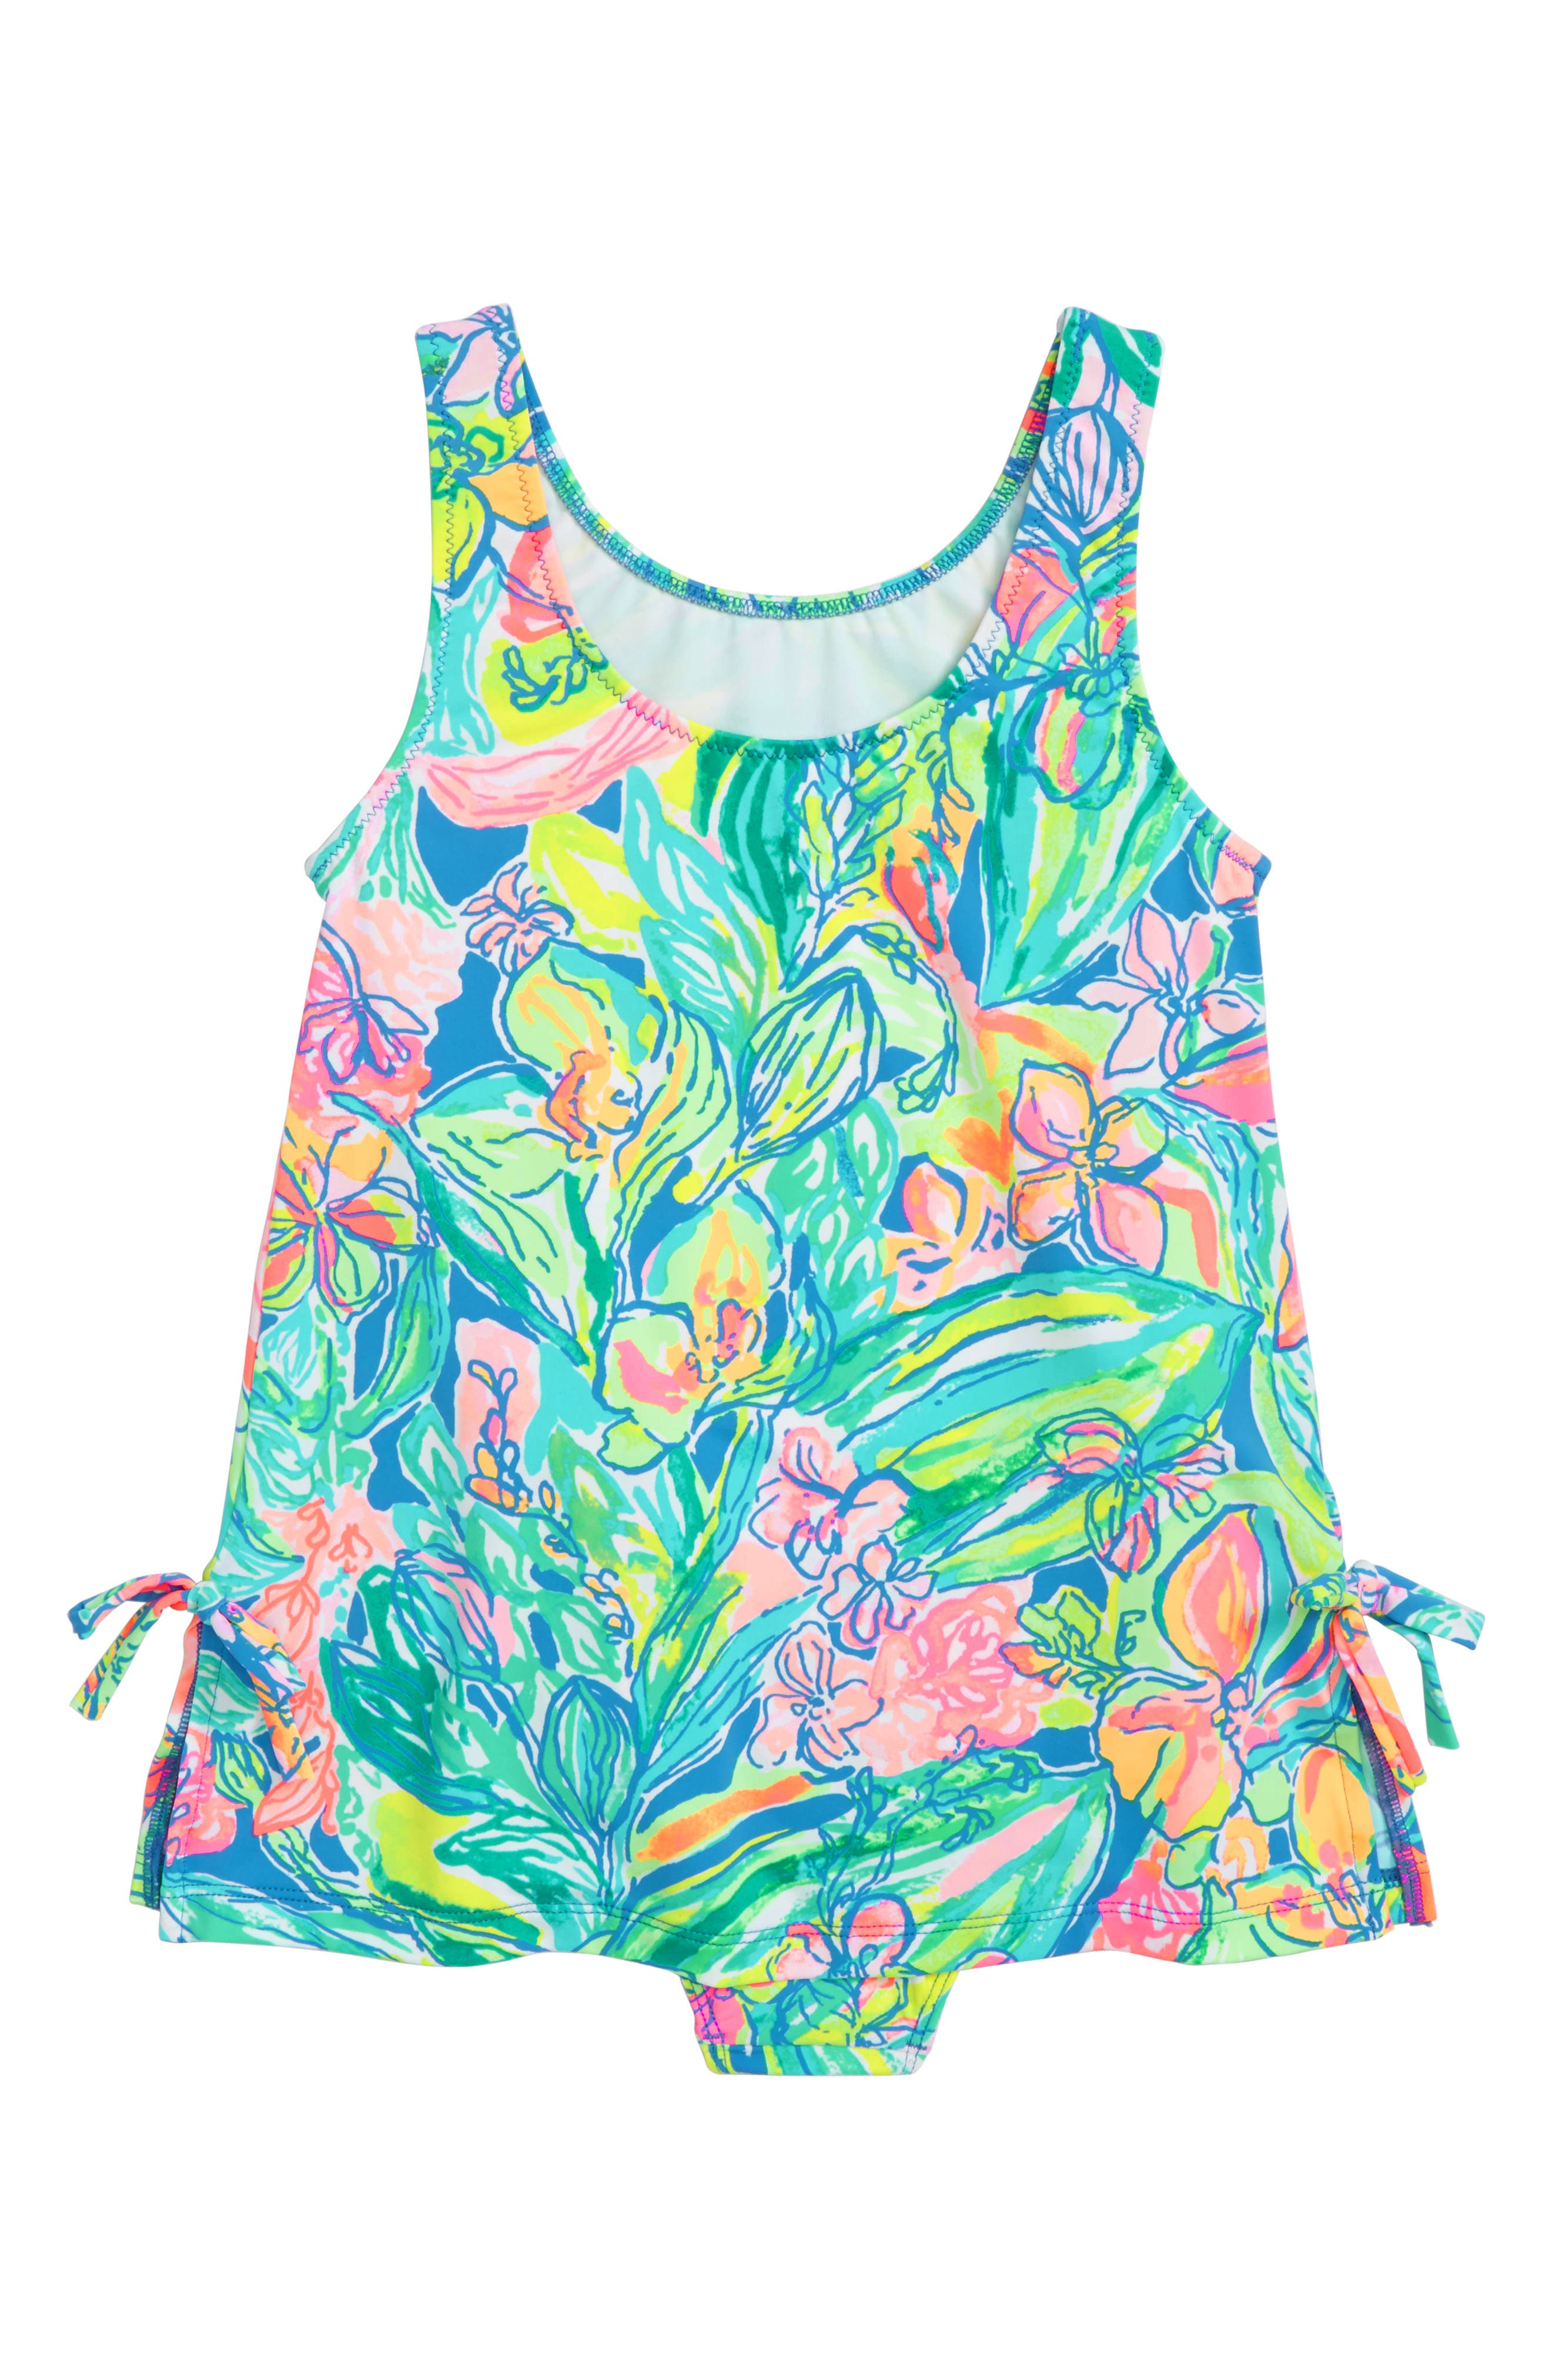 Little Lilly One-Piece Swimsuit,                             Main thumbnail 1, color,                             Bennet Blue Surf Gypsea